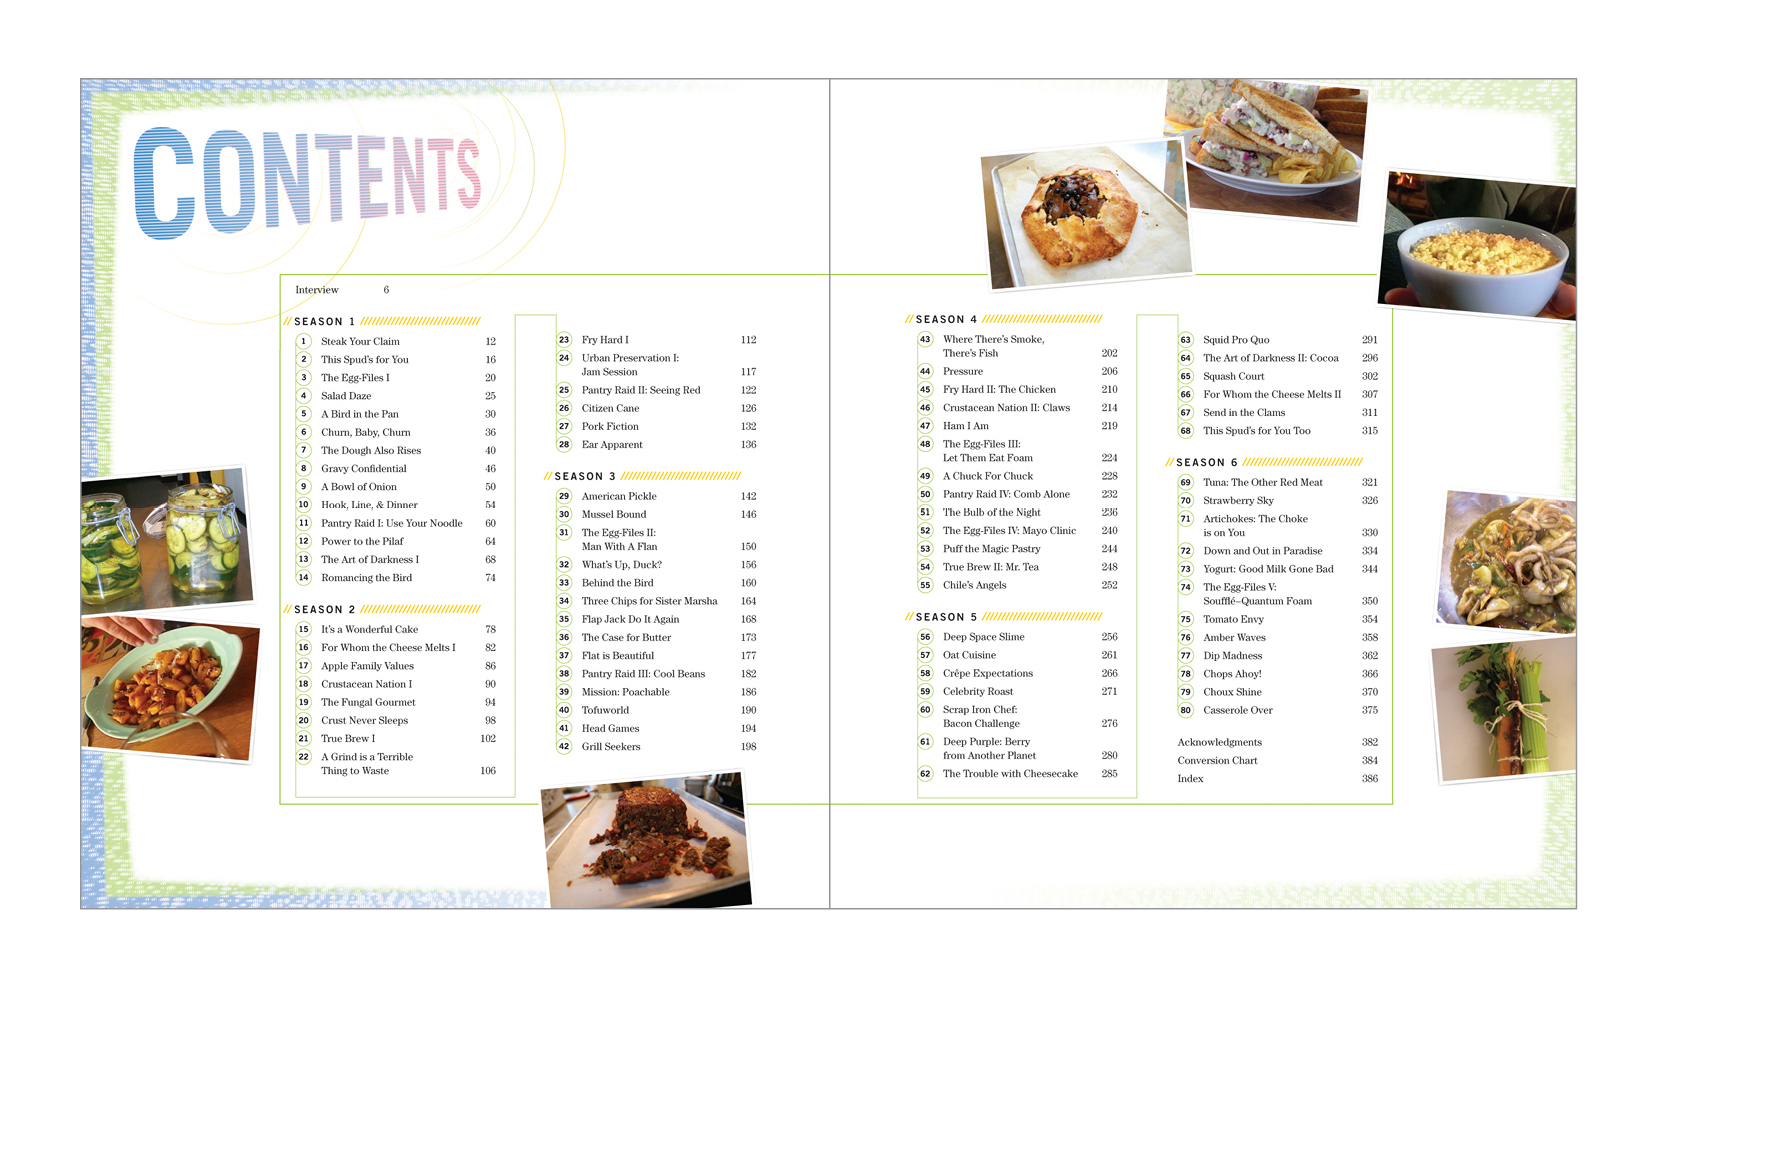 Contents -  Every episode is covered separately, illustrated with on-set reference shots of the dishes